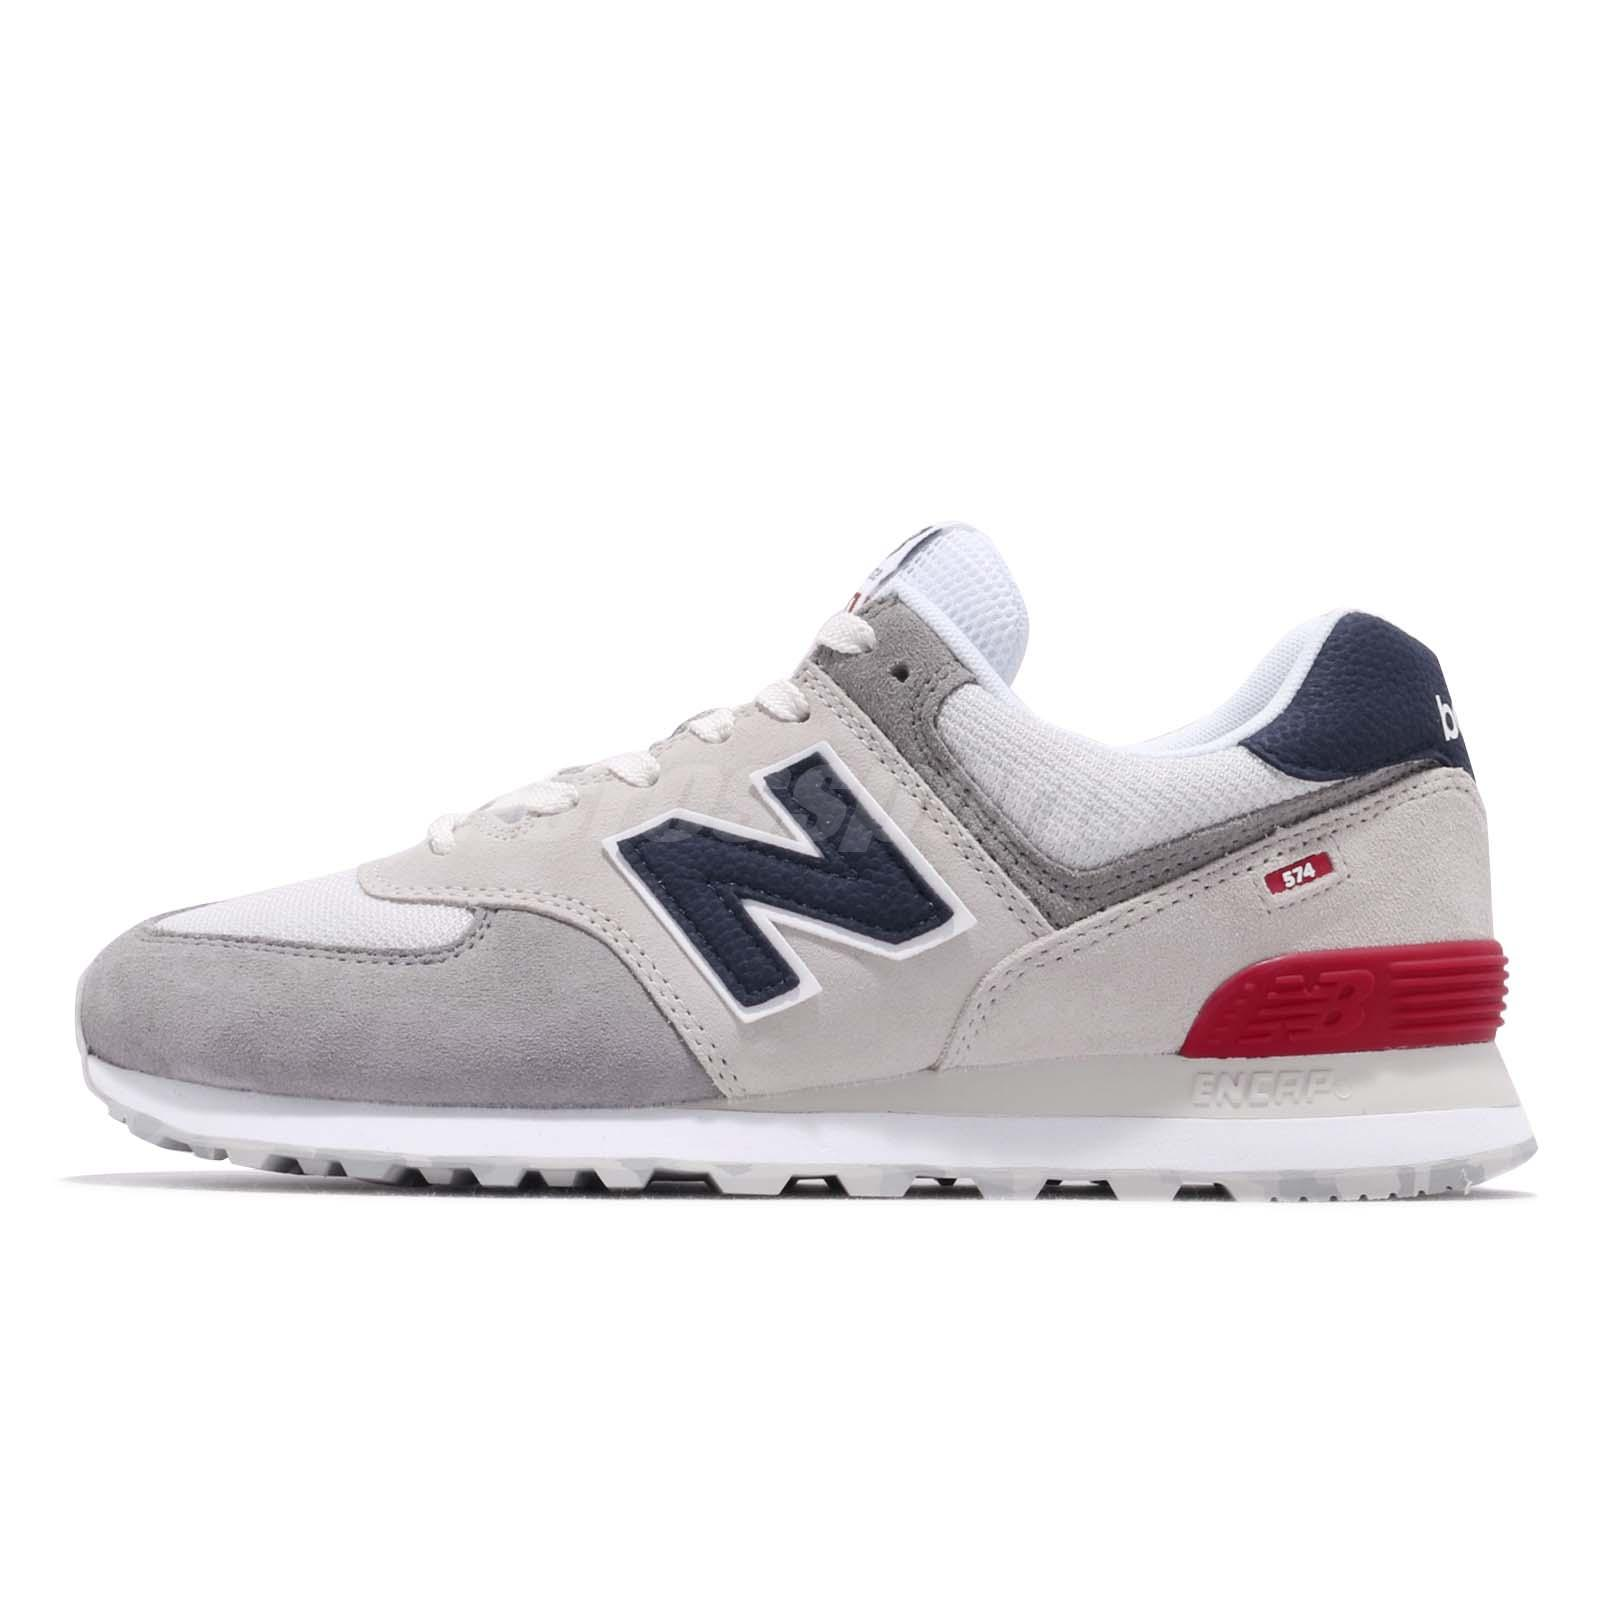 new style 1b996 867e3 Details about New Balance ML574UJD D Grey Blue Red White Men Running Shoes  Sneakers ML574UJDD